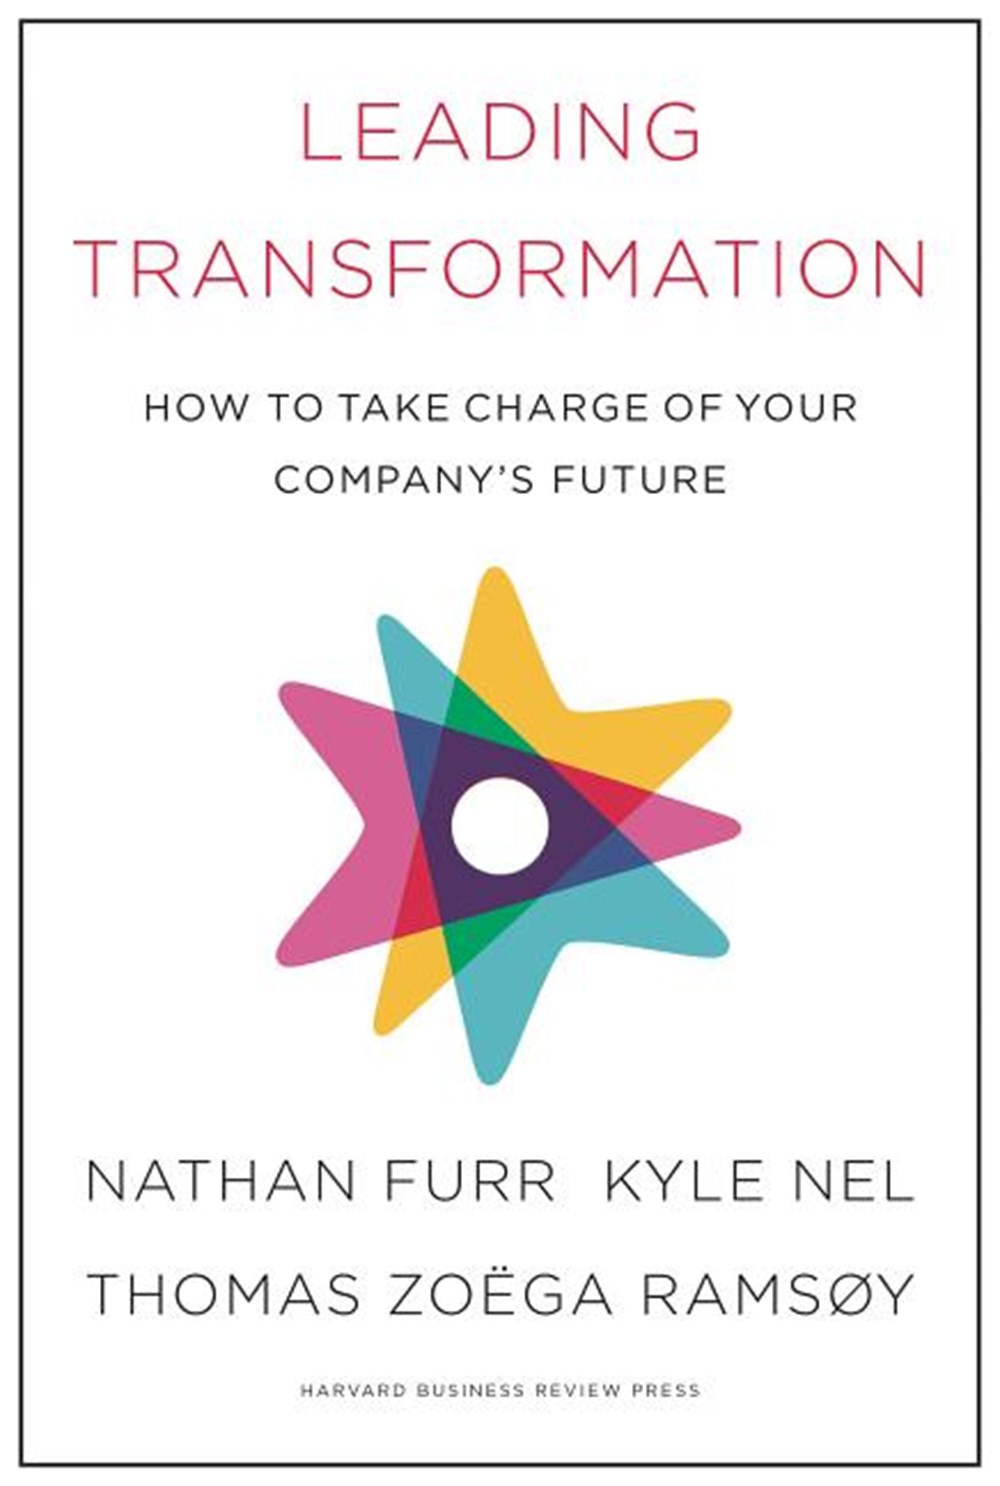 Leading Transformation How to Take Charge of Your Company's Future